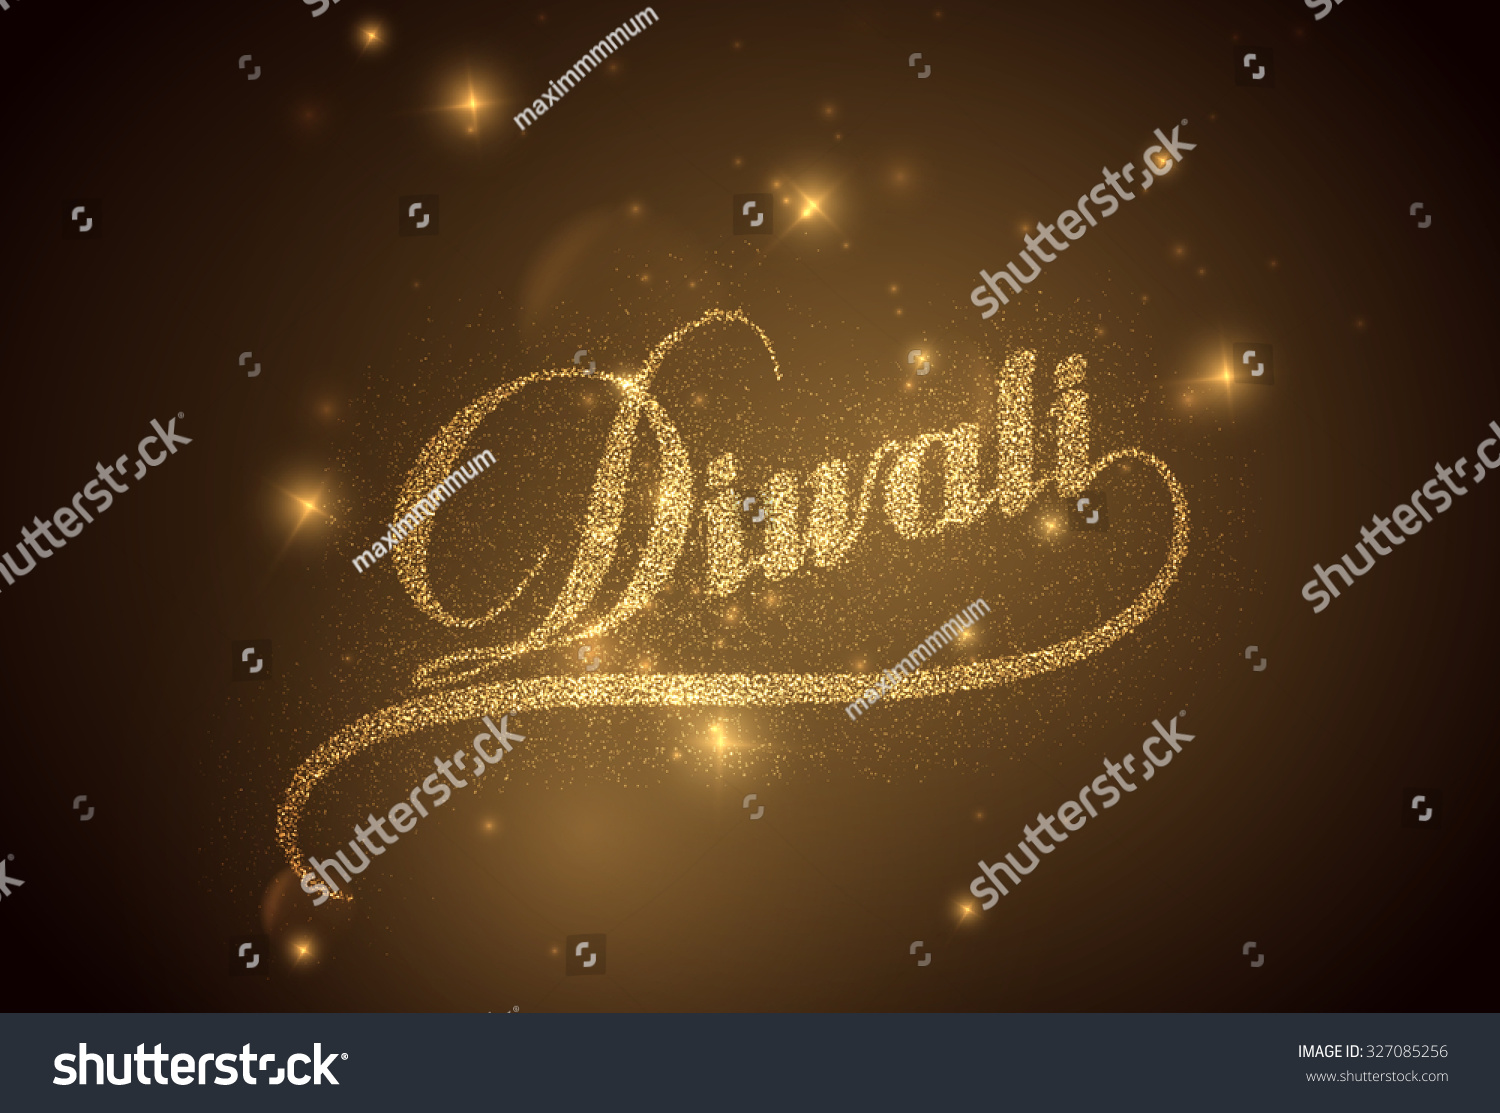 Diwali Holiday Vector Illustration Of Religion Event Deepavali Shiny Lettering Composition With Sparkles Poster Template